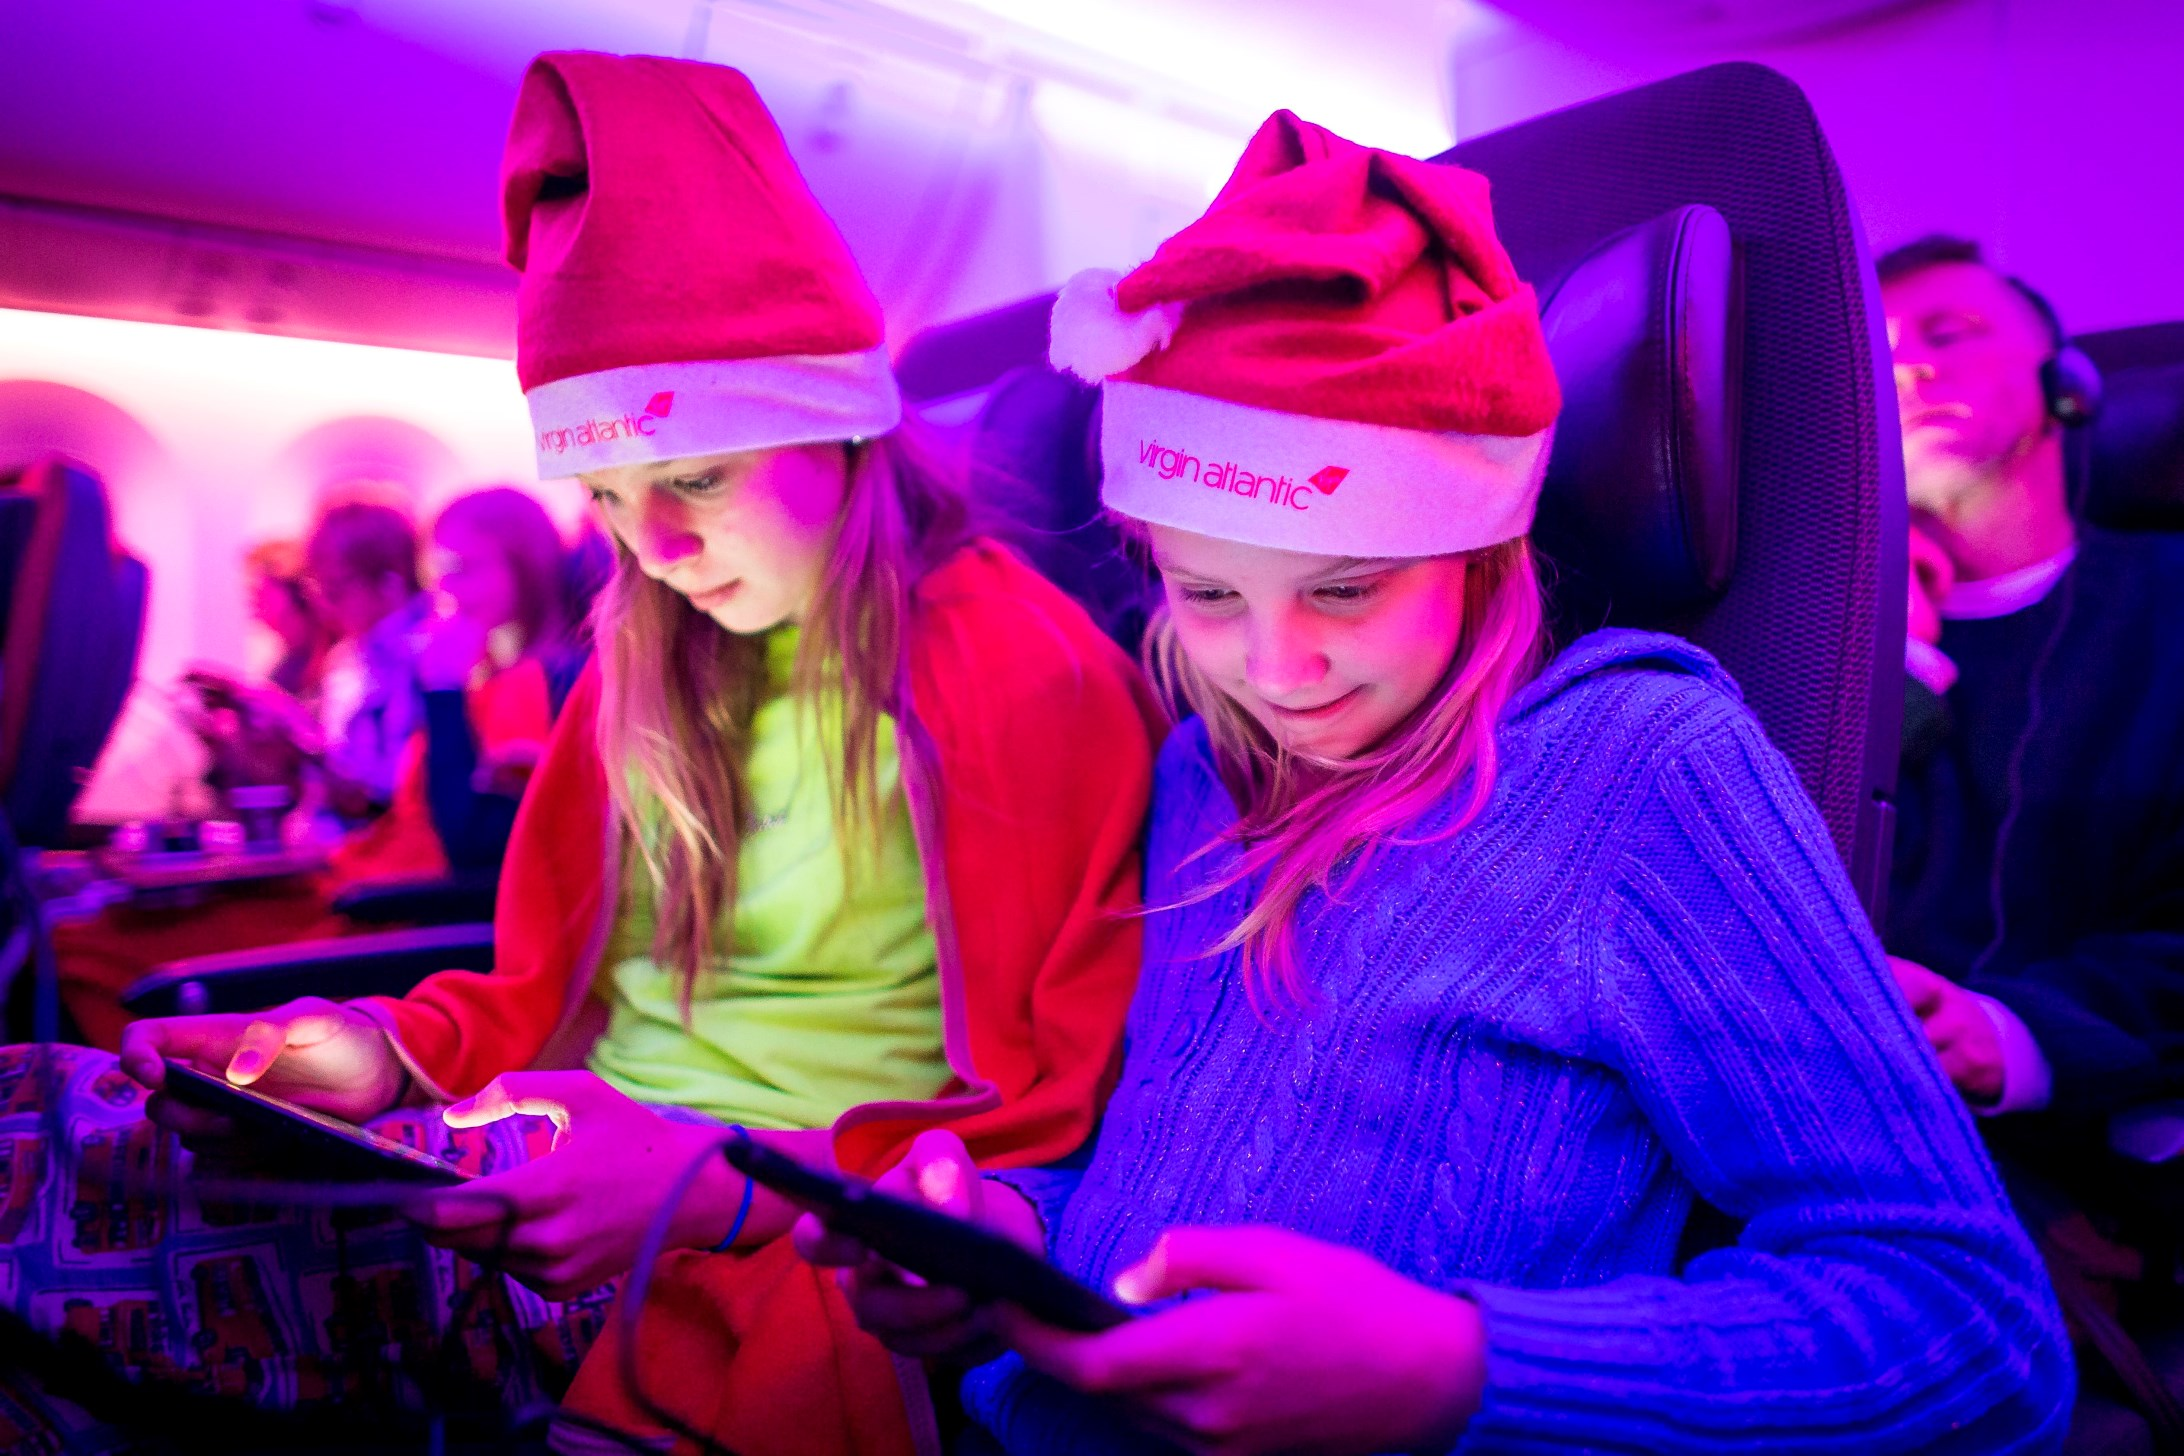 Sabrina Callini and Julia CalliniVirgin Atlantic delights passengers during an extra special christmas flight on board the airlineÕs 787 Dreamliner on 21 December travelling from London Heathrow to Boston.  Passengers were surprised by some special visitors as Santa dropped in as he flew by the aircraft during a trans-Atlantic reindeer training flight. Debbie Hulme, Head of Customer Experience at Virgin Atlantic commented, ÒWe wanted to offer something extra special for the families flying with us this Christmas and who better to spread the Christmas cheer than Santa himself? ÒCombining a large sprinkle of Christmas magic and in-flight connectivity we arranged for Santa and his reindeer to pay a flying visit to customers on board our 787 aircraft as it flew across the Atlantic to Boston. ÒÒPassengers tracked his movements from their Windows tablets and were able to live chat with him before sharing their Santa selfies using the on board wifiÓ.The experience began at boarding where all 264 customers onboard VS11 were given an early Christmas present from Microsoft of a Windows tablet. Once on-board they could log on to Norad Track Santa and also enjoy a live chat as he took his sleigh for a spin over the Atlantic. When the aircraft was over Greenland, Santa radioed the Virgin Atlantic pilots flying the aircraft asking permission to land on the plane for some refreshments and to also give his reindeers a rest. Passengers were then amazed to watch the sleigh land on the aircraft through special glass panels in the roof before he accessed the plane through a special Santa hatch.Santa then walked down the aisles, delighting children and taking selfies with surprised passengers before jetting back off into the night sky. Christmas continued for those on the plane with Microsoft prizes of Xbox and Windows devices from Dell, Lenovo & Microsoft being won in competitions during the flight.  Fred Warren, Creative Director, Microsoft Connected Digital Services commented: Òthe chance to create the first 4D experience in flight for passengers where technology was the enabler of bringing Christmas to life was a fantastic opportunity for Microsoft.  Co-creating this concept with Virgin Atlantic has been unique as we adapted the technology to deliver a true Virgin Atlantic brand experienceÓ.